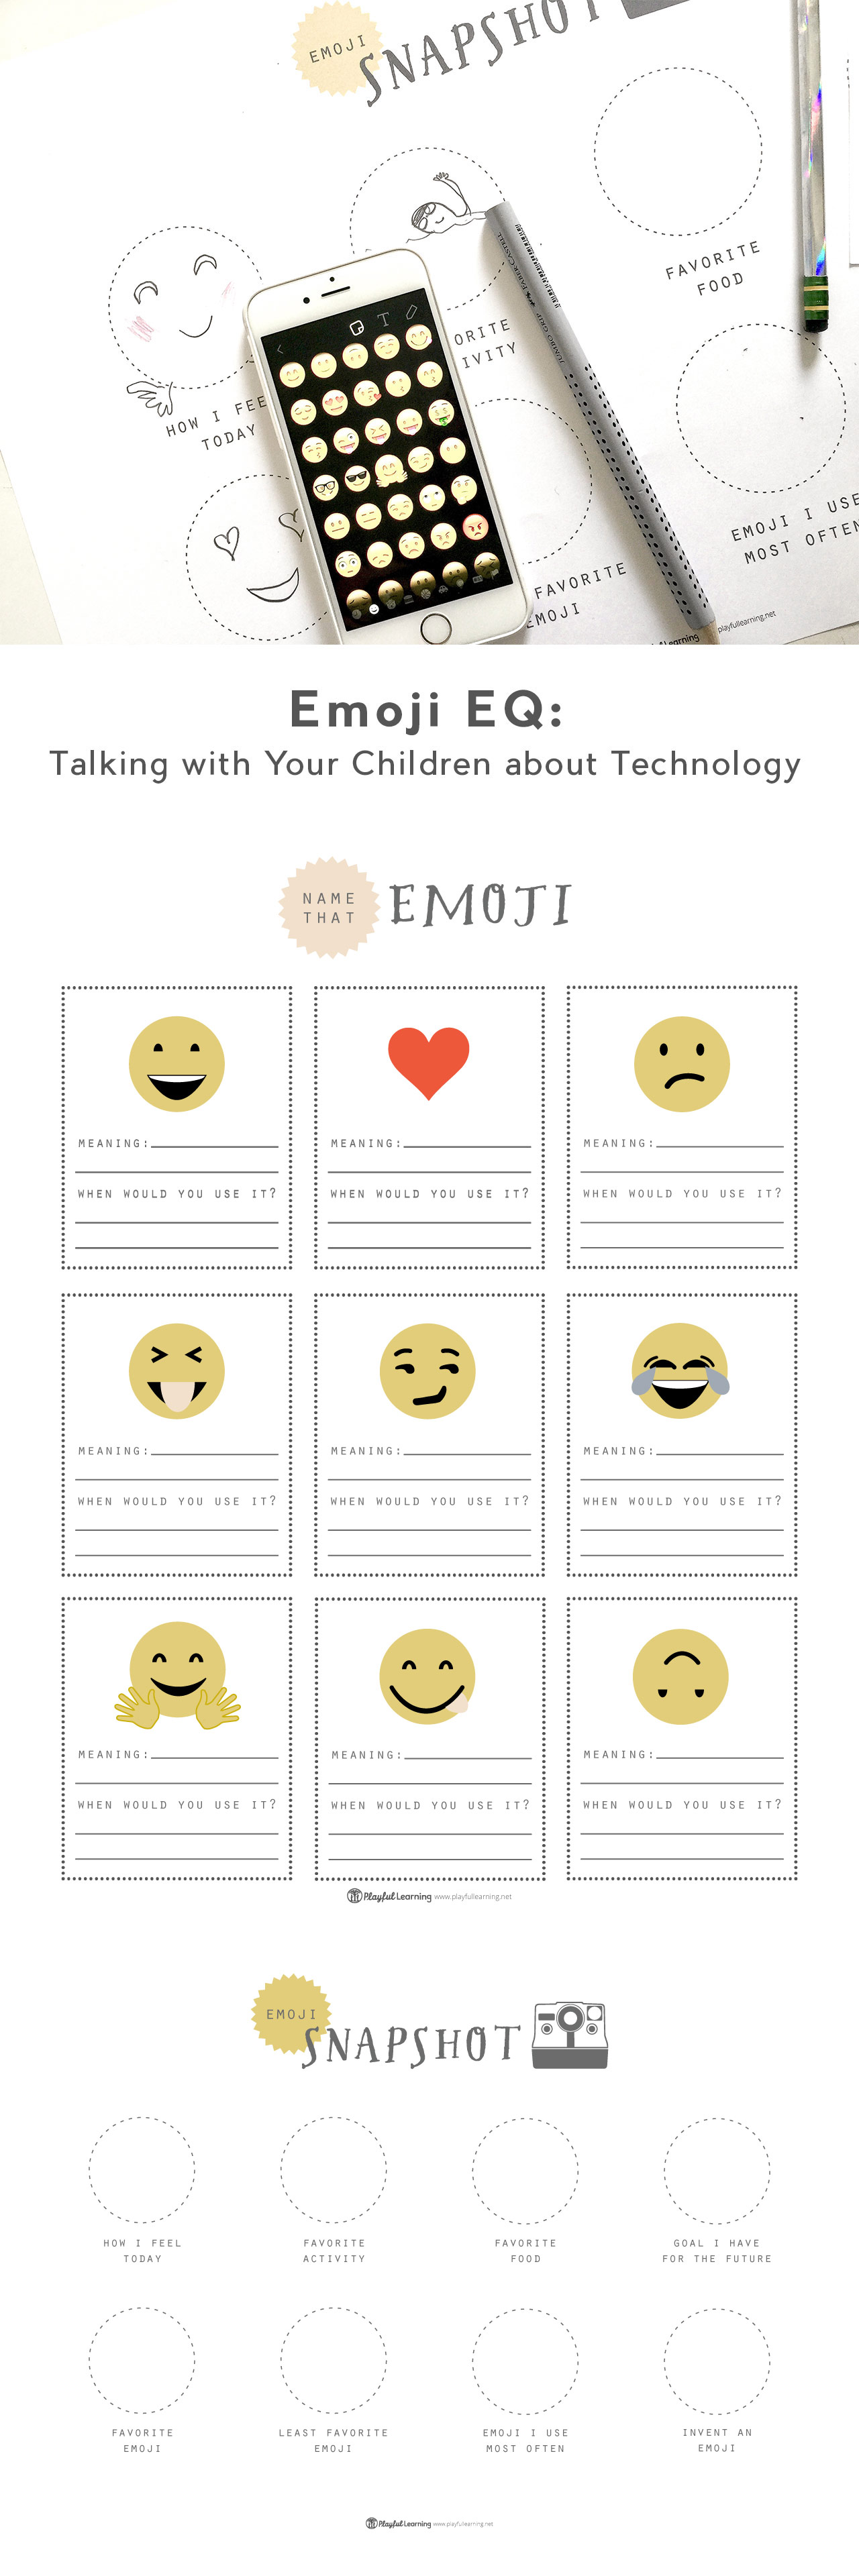 Emoji Eq A Great Way To Open Dialogue With Your Tweens And Teens About Technology